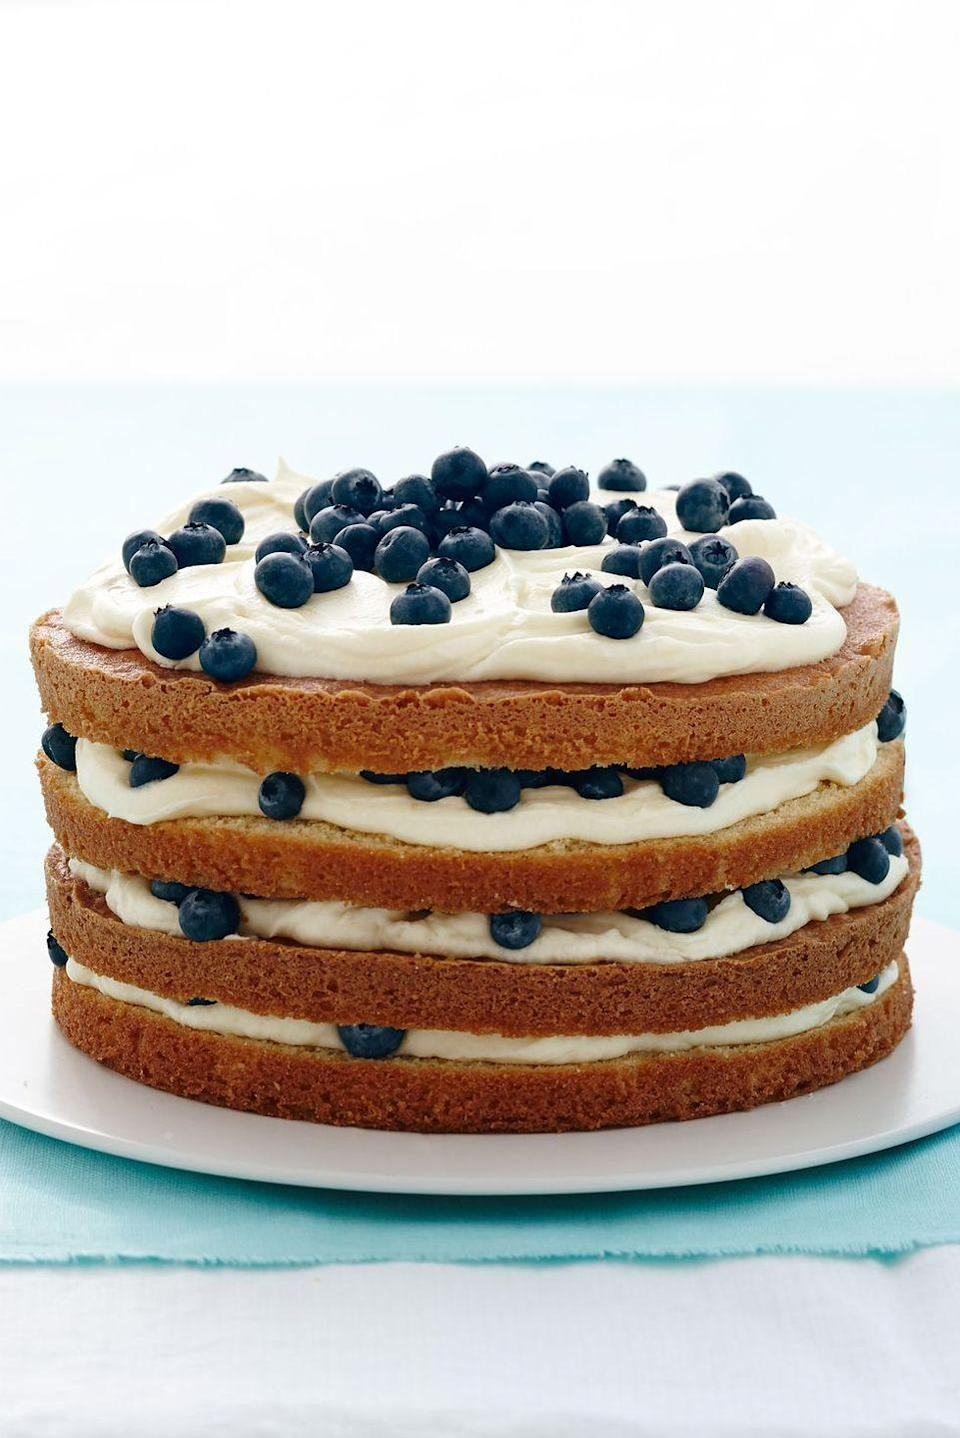 """<p> Ree Drummond's recipe leaves the sides of this cake unfrosted, so your guests know exactly what creamy and fluffy goodness they're in for.</p><p><em><a href=""""https://www.goodhousekeeping.com/food-recipes/a15612/lemon-blueberry-layer-cake-recipe-wdy0414/"""" rel=""""nofollow noopener"""" target=""""_blank"""" data-ylk=""""slk:Get the recipe for Lemon Blueberry Layer Cake »"""" class=""""link rapid-noclick-resp"""">Get the recipe for Lemon Blueberry Layer Cake »</a></em></p>"""